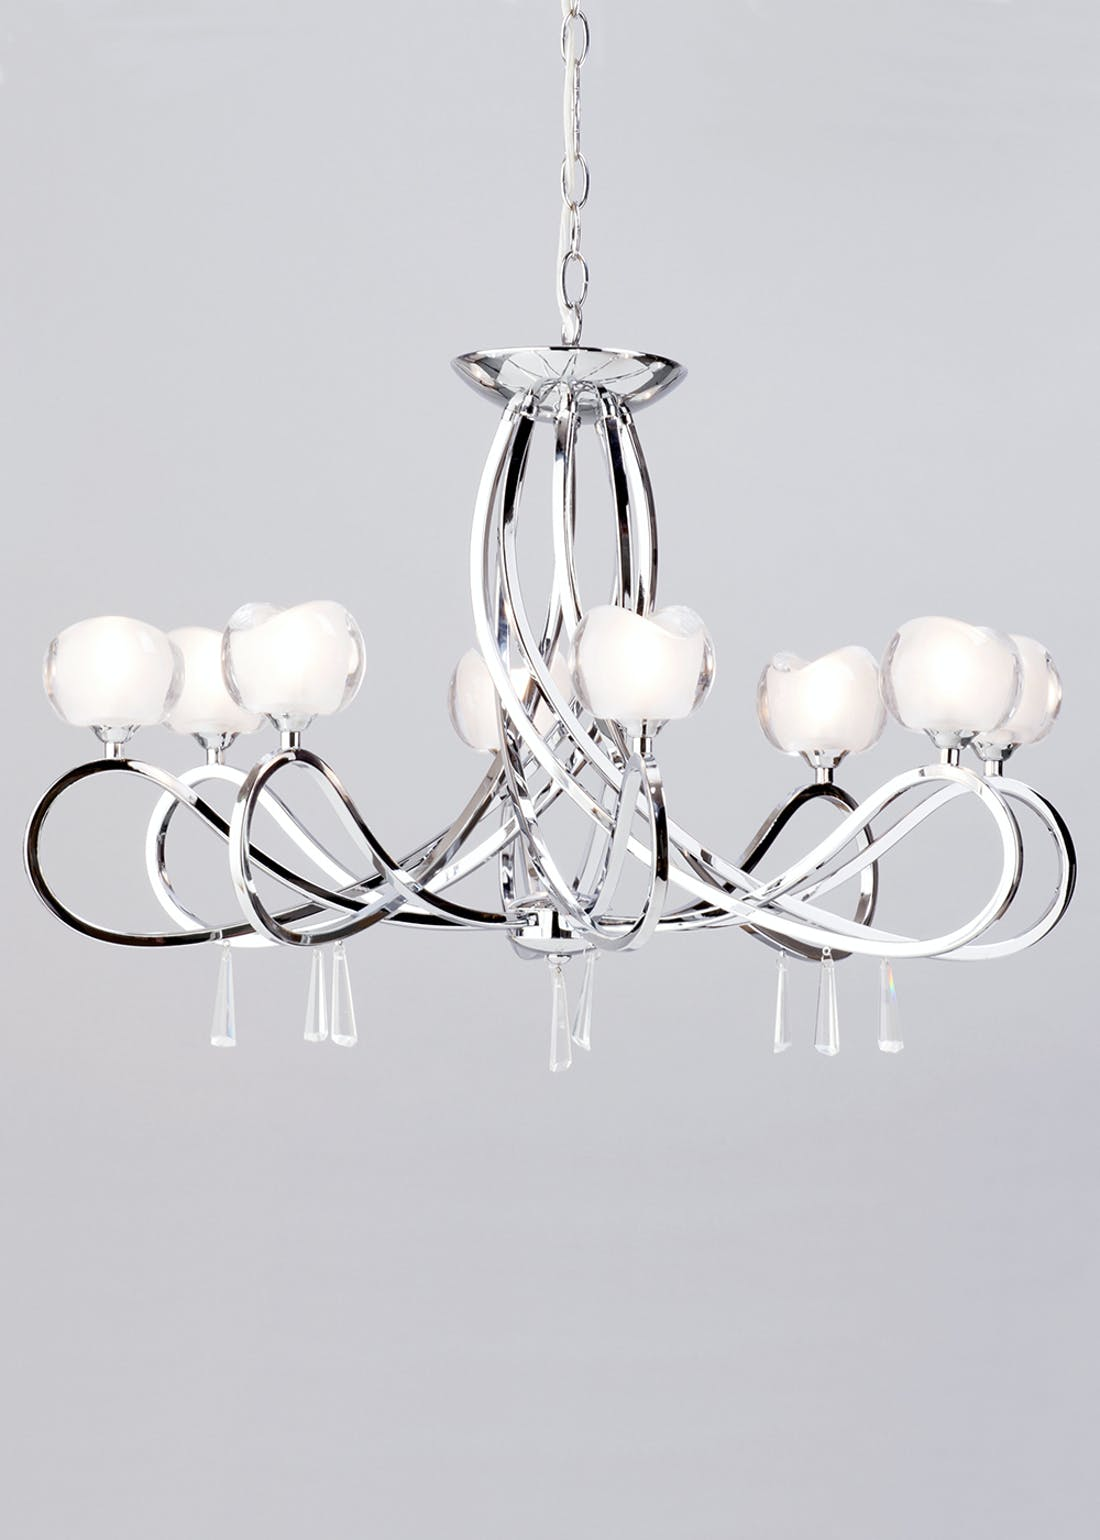 Inlight Silva 8 Light Glass Ceiling Light (80cm x 63cm x 63cm)